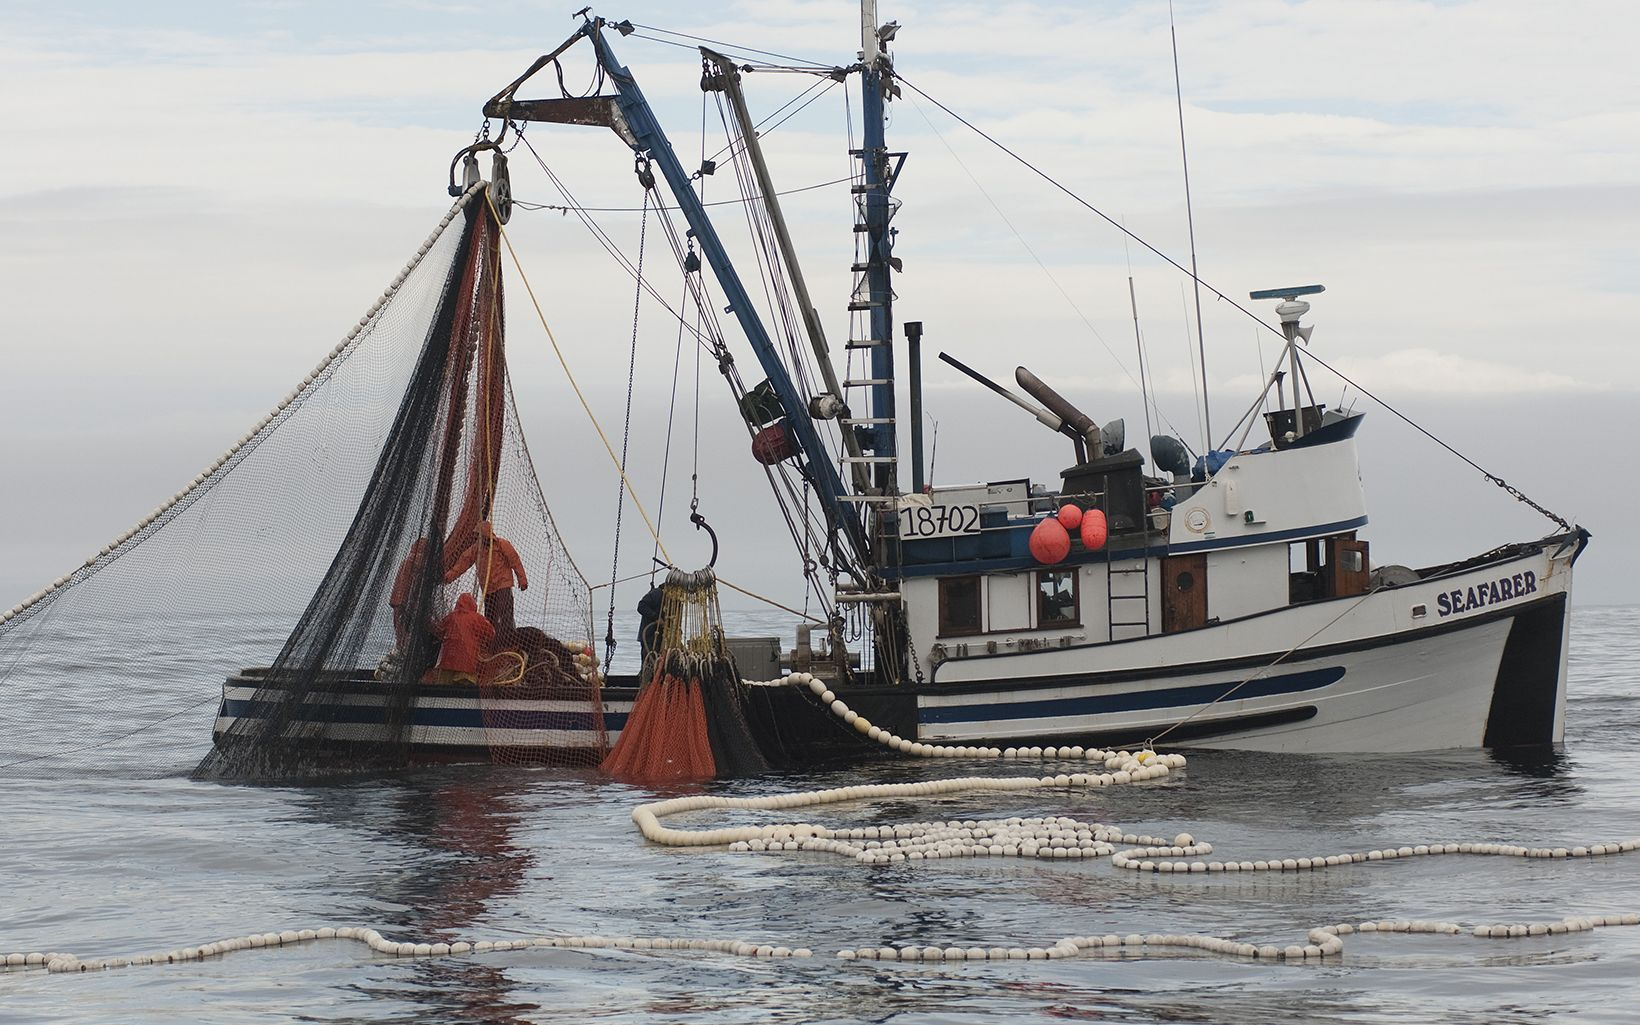 Hauling seine nets on a commercial salmon fishing boat along the coast of Prince of Wales Island in Southeast Alaska.